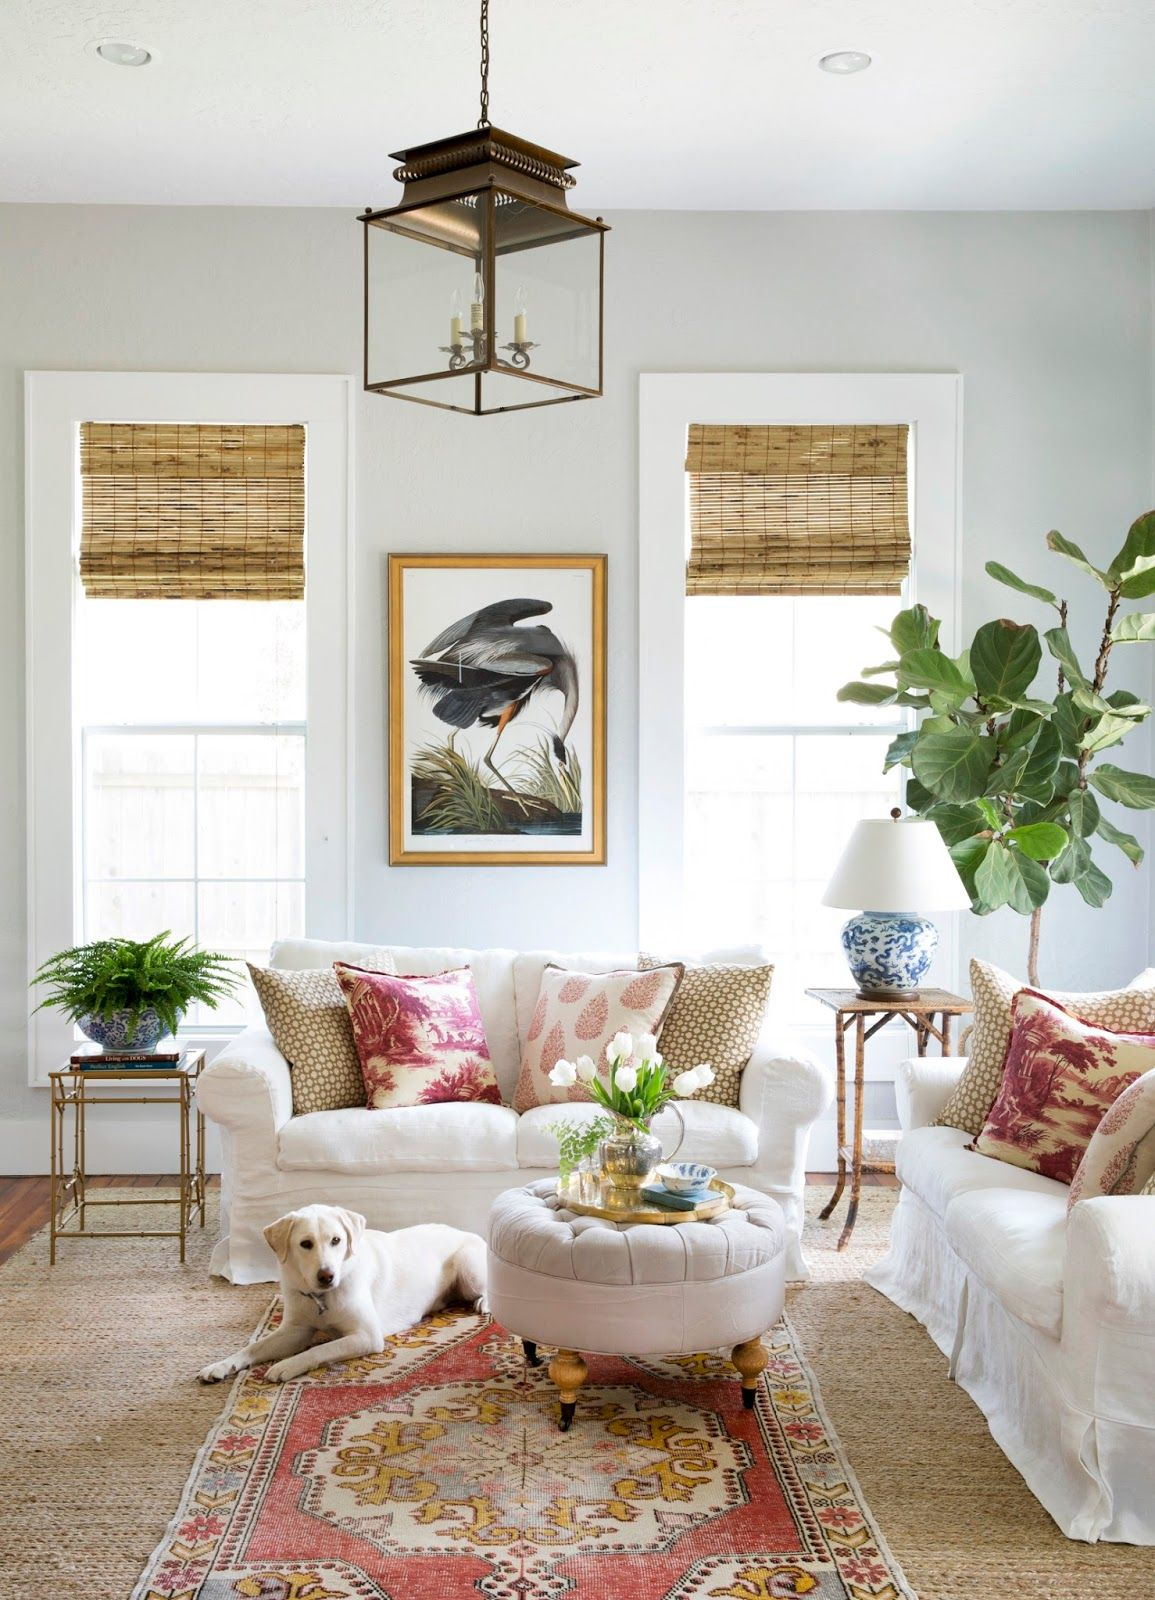 Home Tour: Charming Country Cottage in Texas by Holly Matthis ...